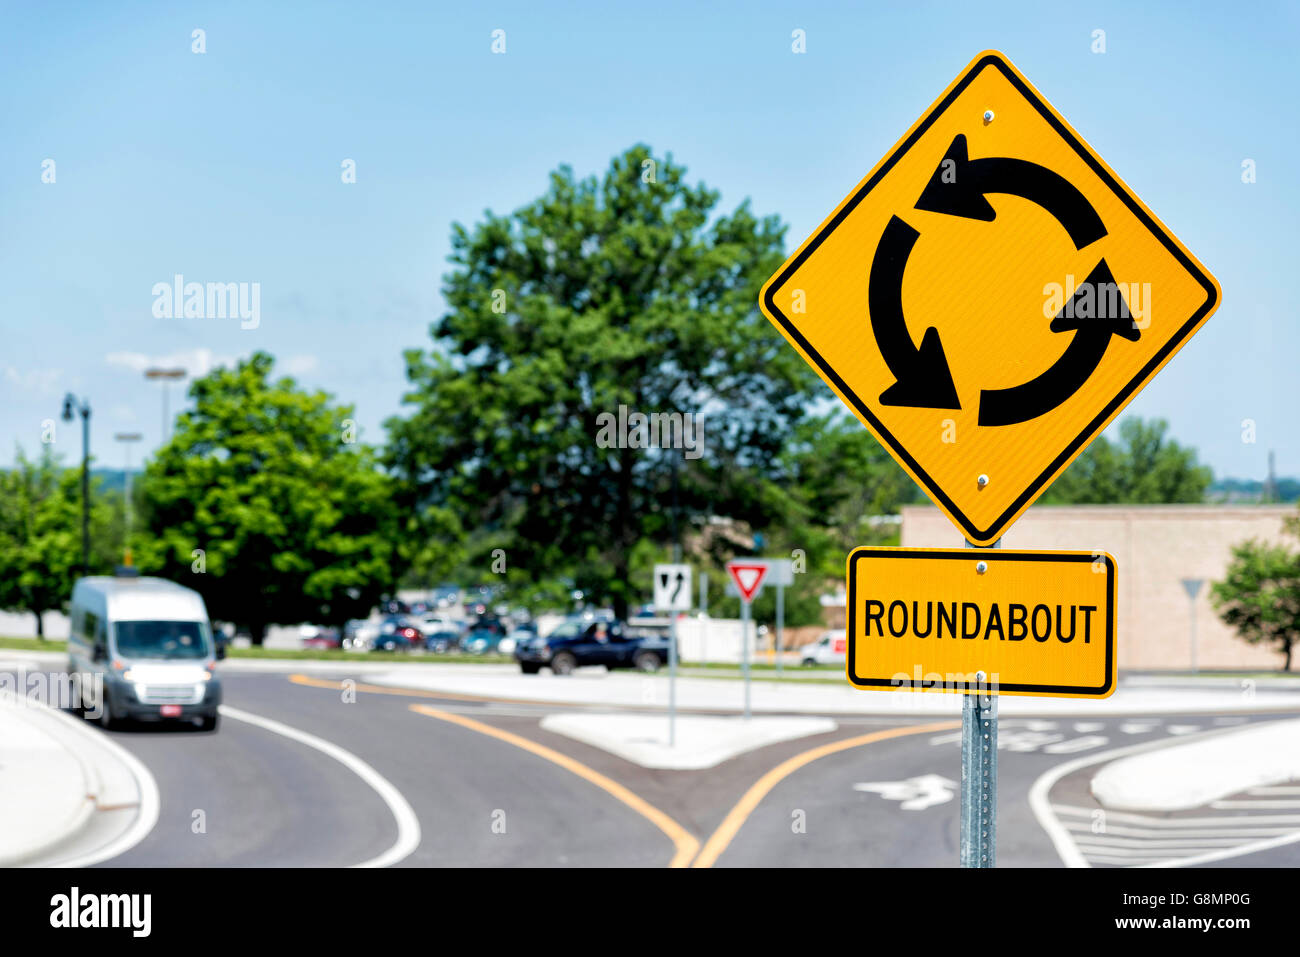 Rond point indiquant montrant rond-point intersection. Plan horizontal. Photo Stock